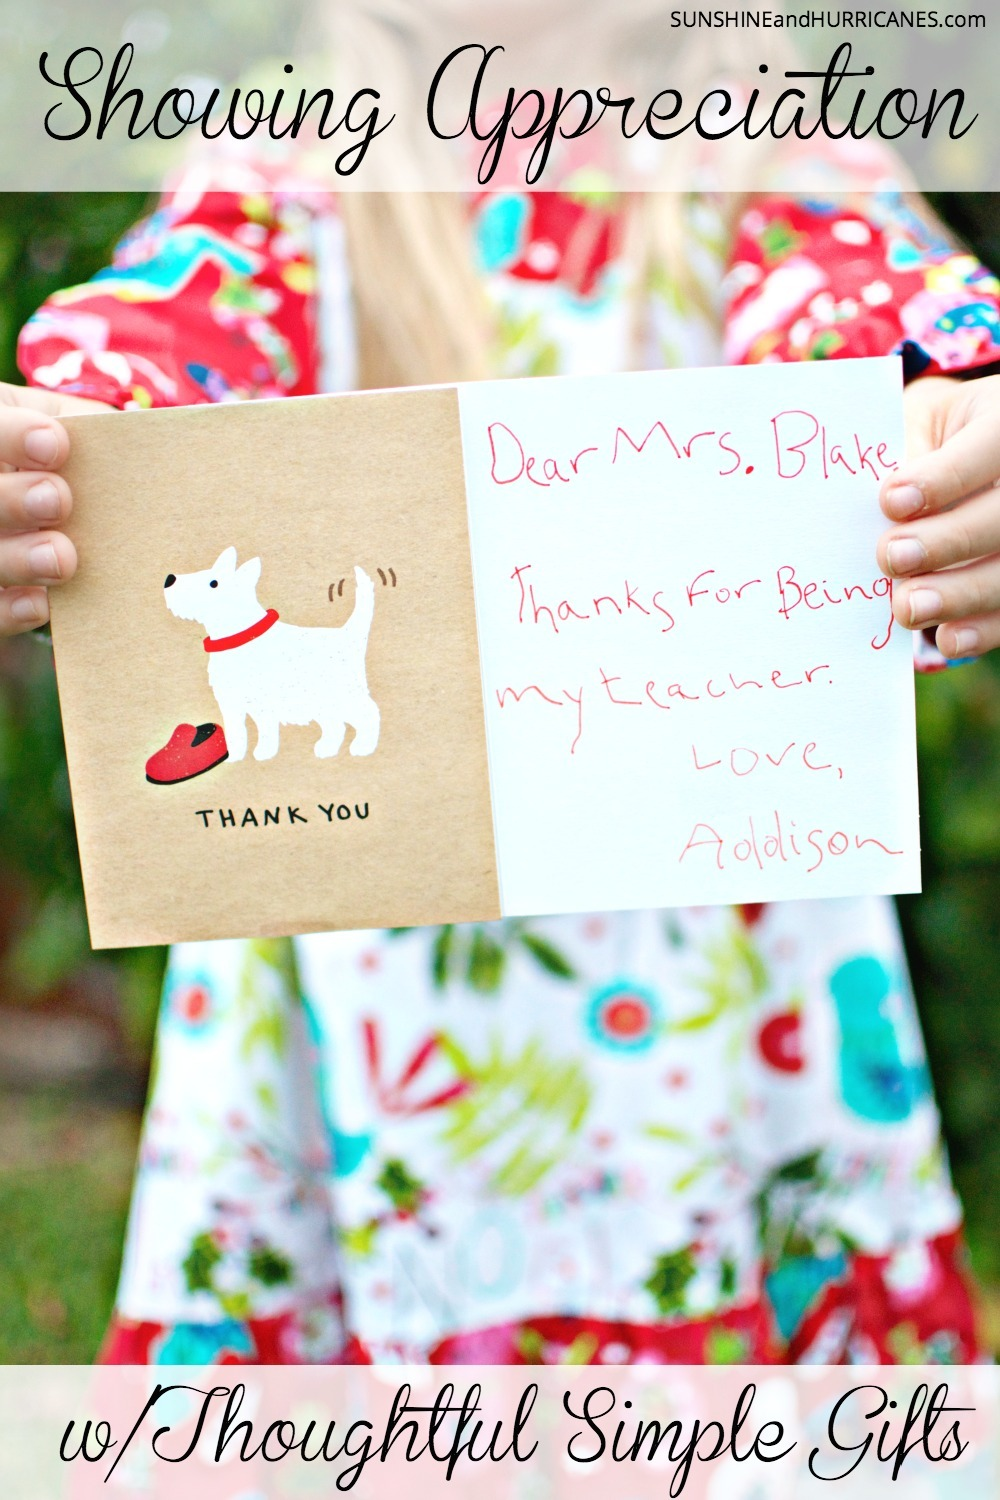 Looking for a meaningful way to show people who play an important role in your kid's lives that they matter? You don't have to spend a lot of money or make big gestures. We've got lots of ideas for how just by paying attention to little details, you can give thoughtful and simple gifts that people will truly love. SunshineandHurricanes.com